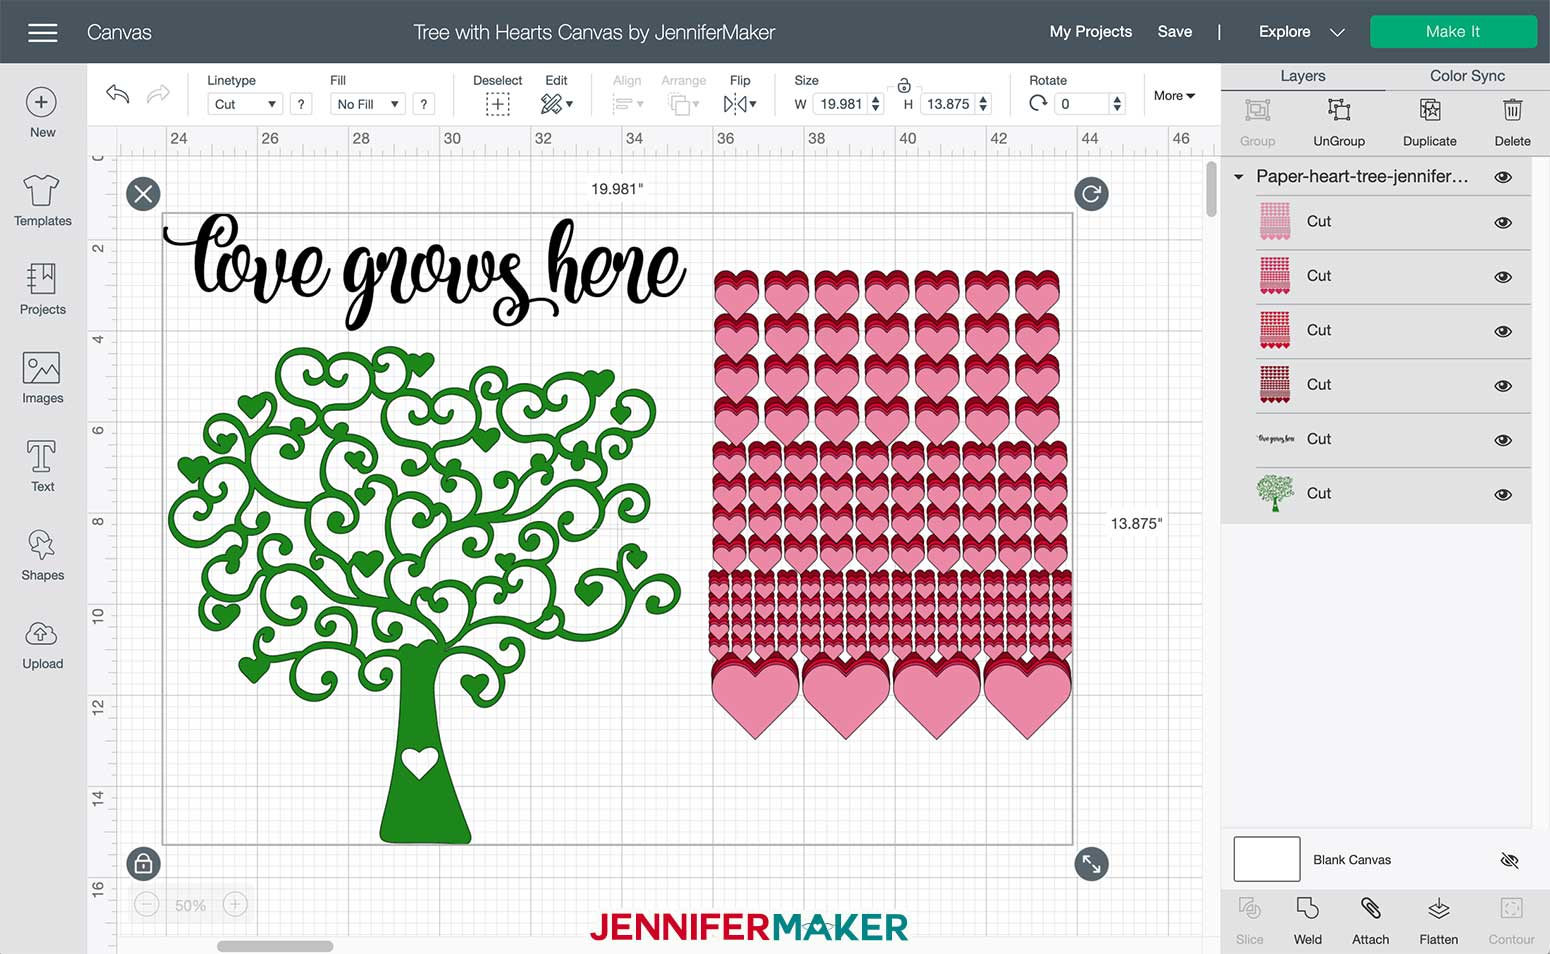 Tree with hearts svg uploaded to Cricut Design Space